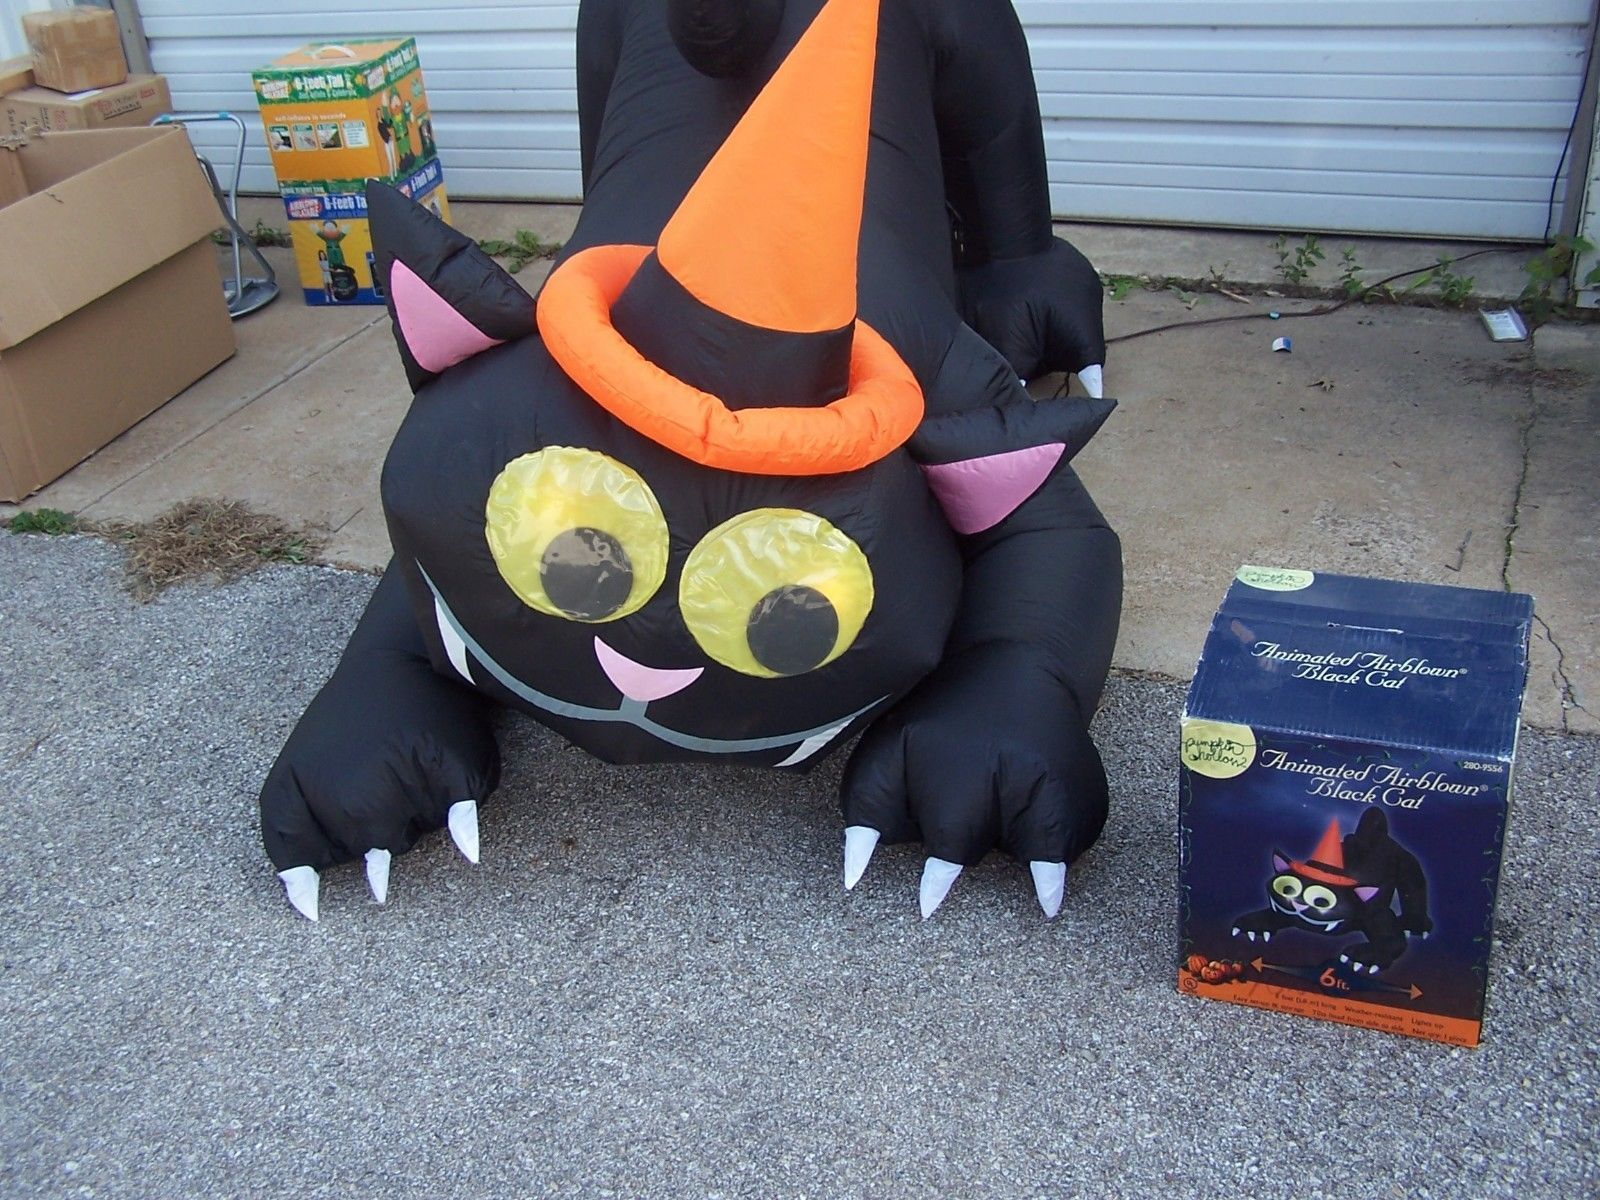 6 airblown inflatable animated moving cat halloween yard decoration lighted ebay - Ebay Halloween Decorations